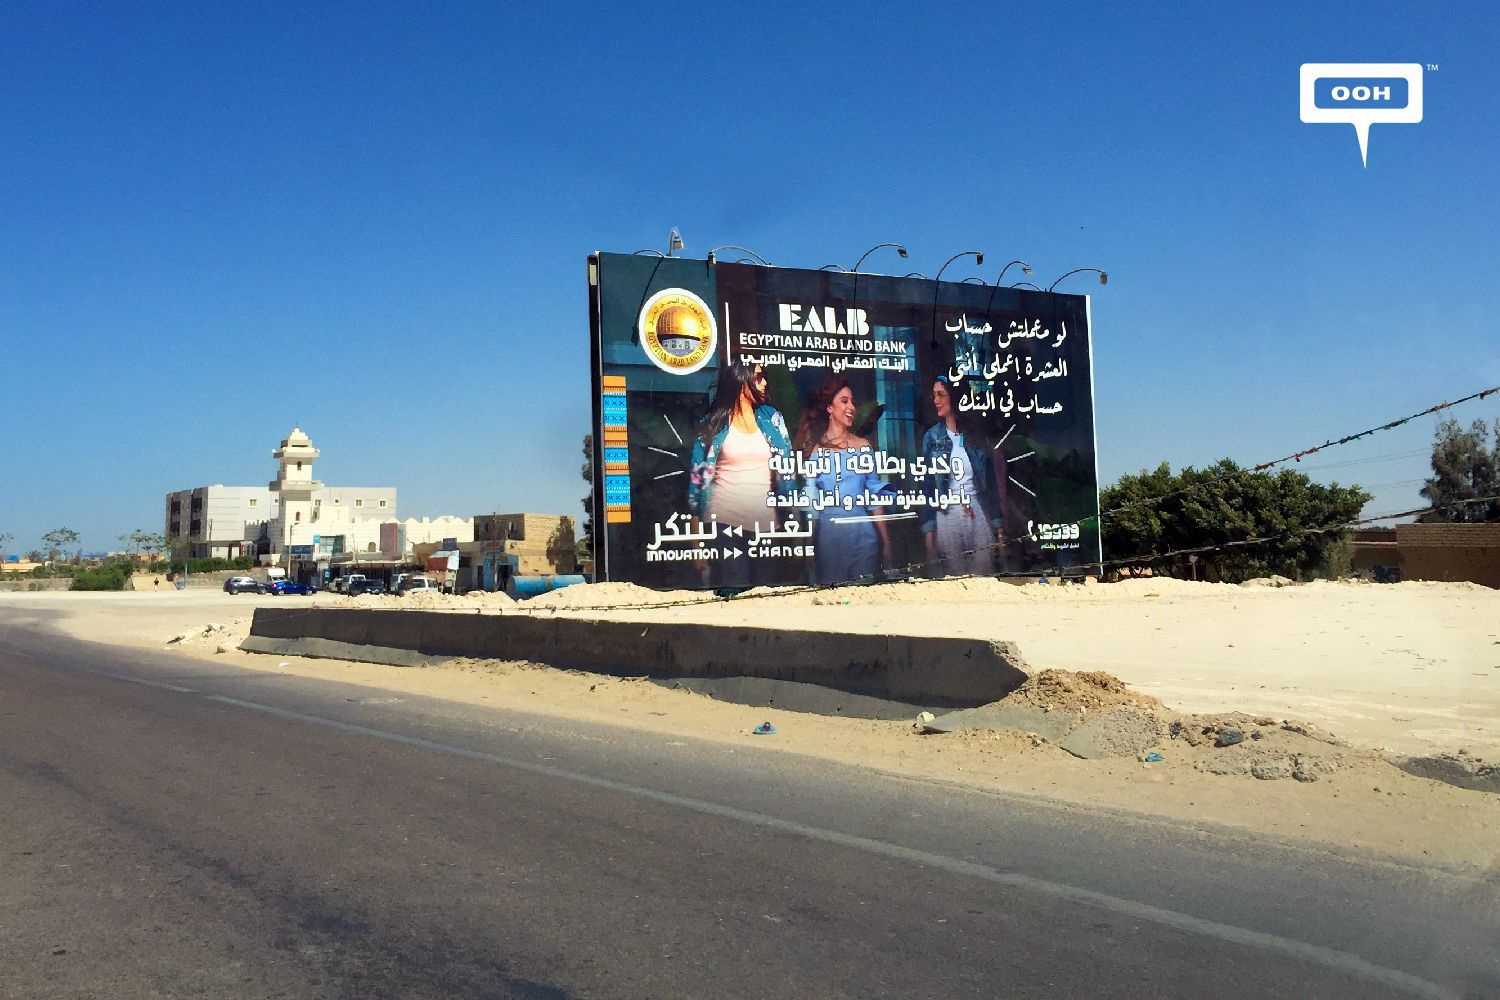 The North Coast billboards freshen our summer with several OOH campaigns-022